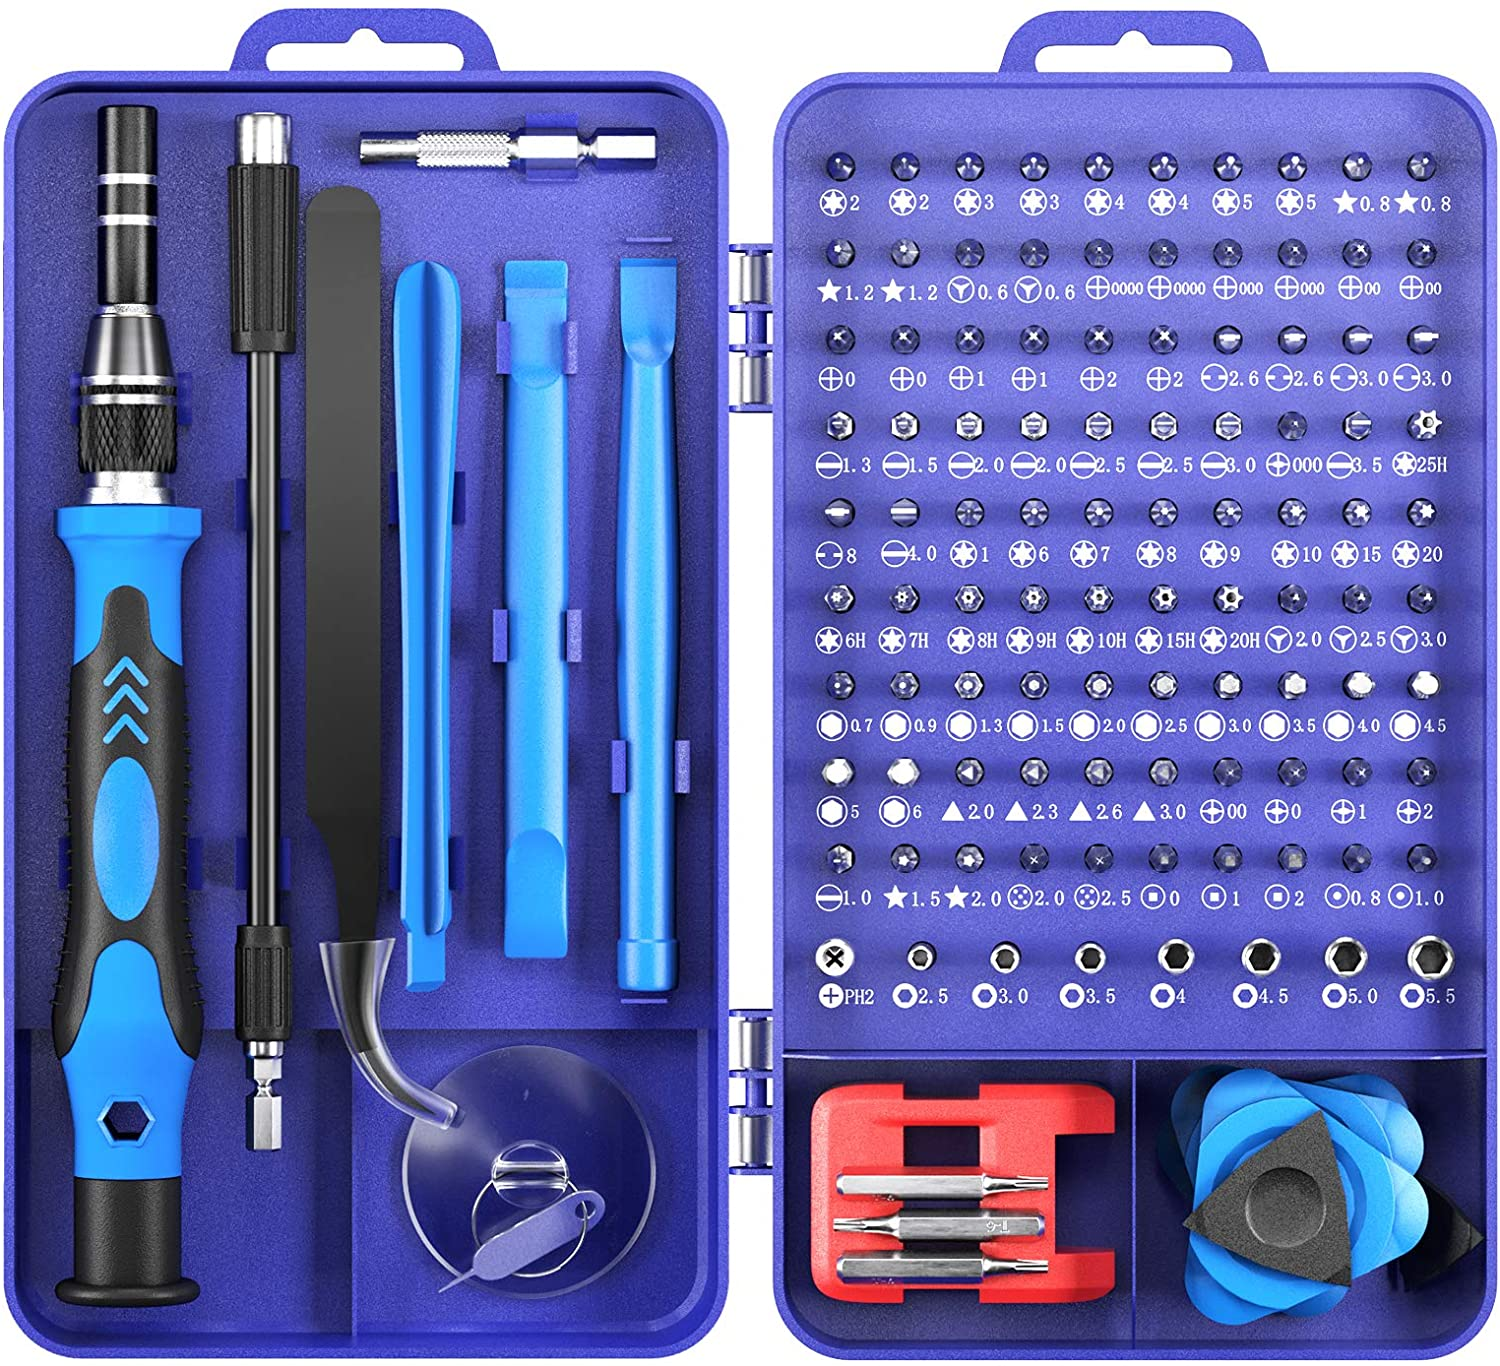 Screwdriver Sets Precision Tools - 122 in 1 Magnetic Multi Screwdrivers Sets with Case, Repair Screw driver Kit for Computer/Eyeglass/PC/Laptop/Mobile Phone/Watch/Camera/TV/Other Electronic Devices